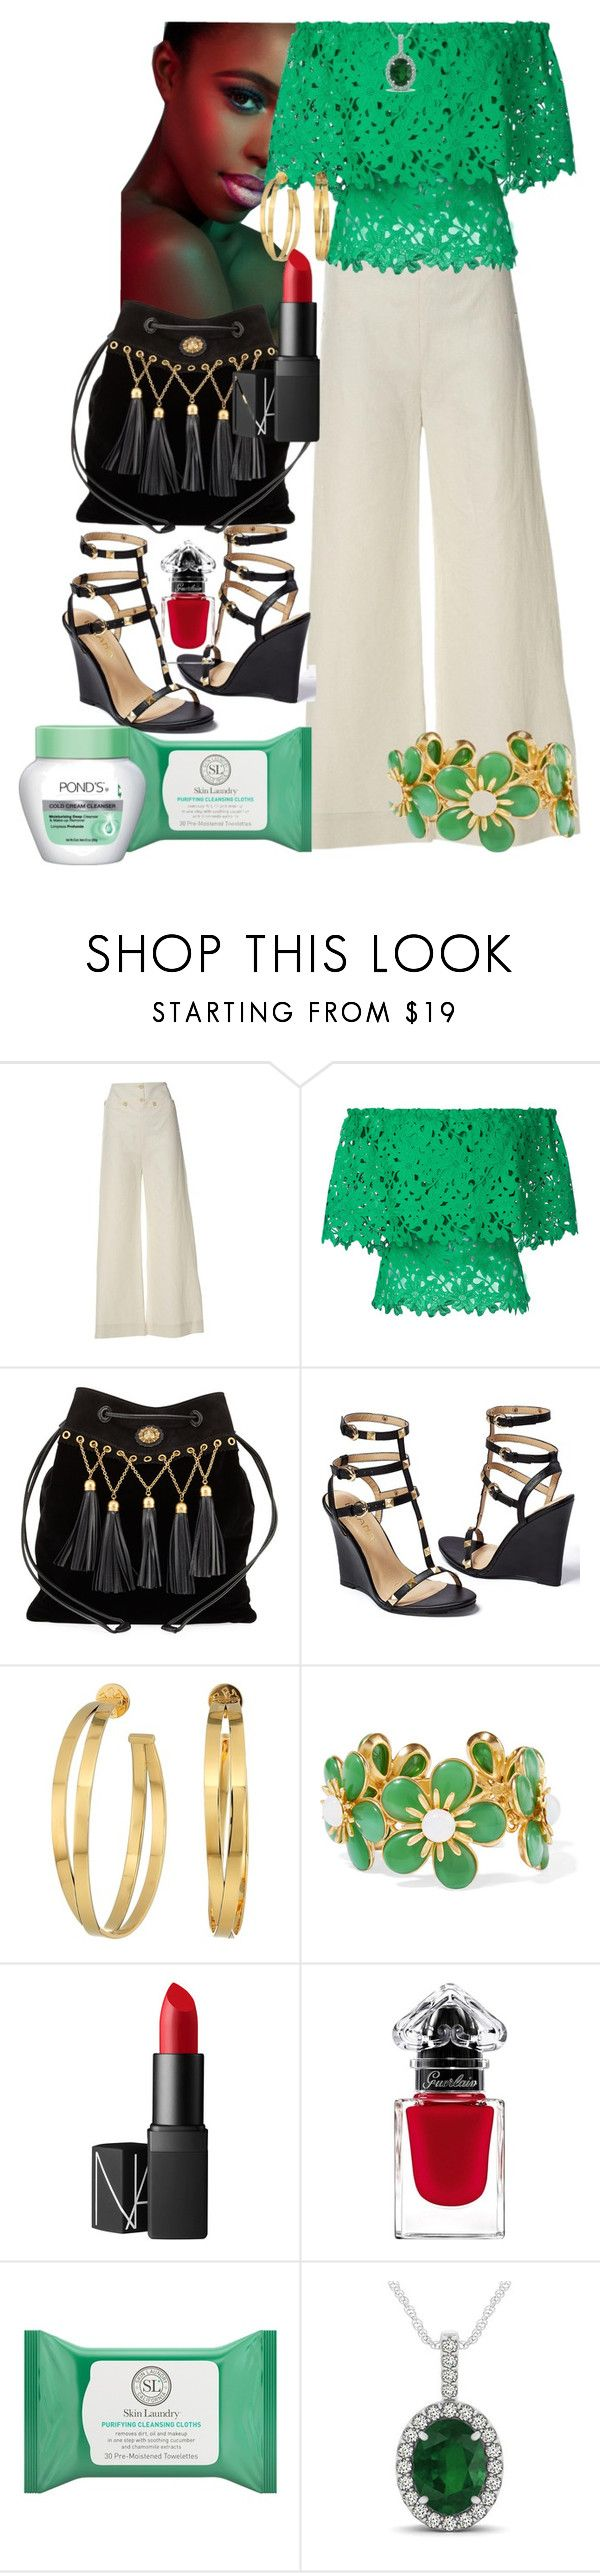 """Summer Fest"" by quirico ❤ liked on Polyvore featuring STELLA McCARTNEY, Bambah, Miu Miu, Venus, Tory Burch, Ben-Amun, NARS Cosmetics, Skin Laundry and Allurez"